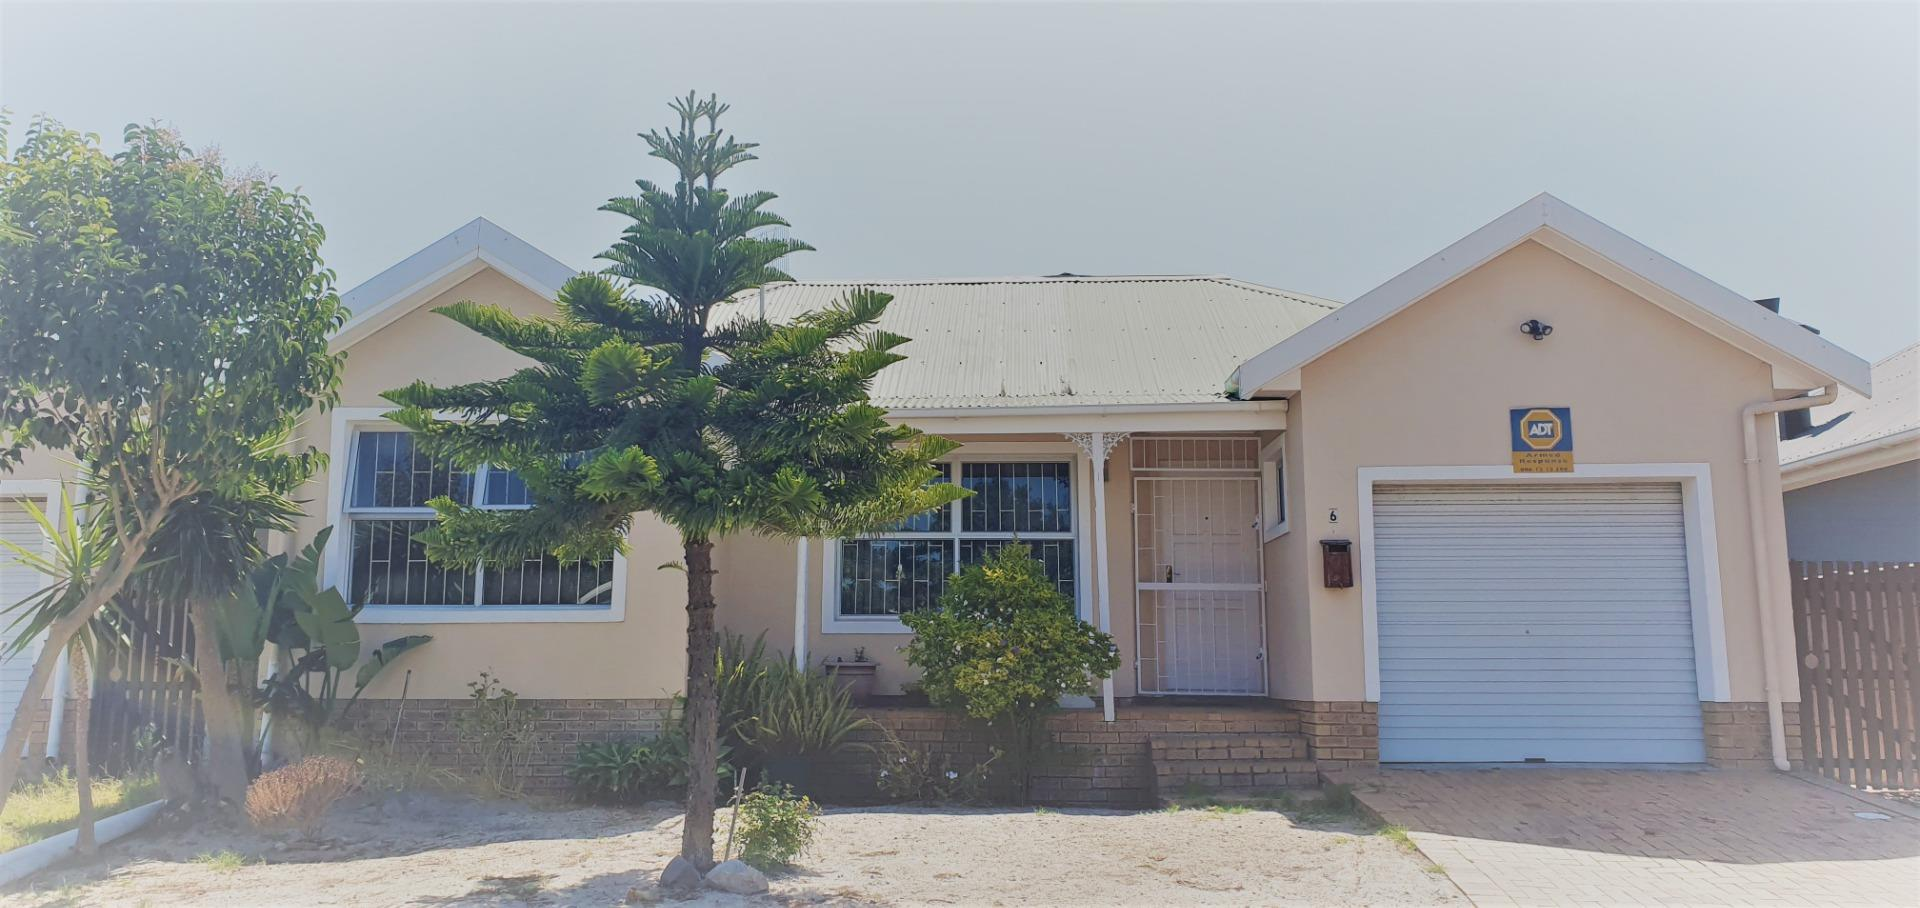 3 Bedroom Townhouse for Sale in Soneike, Kuils River - Western Cape